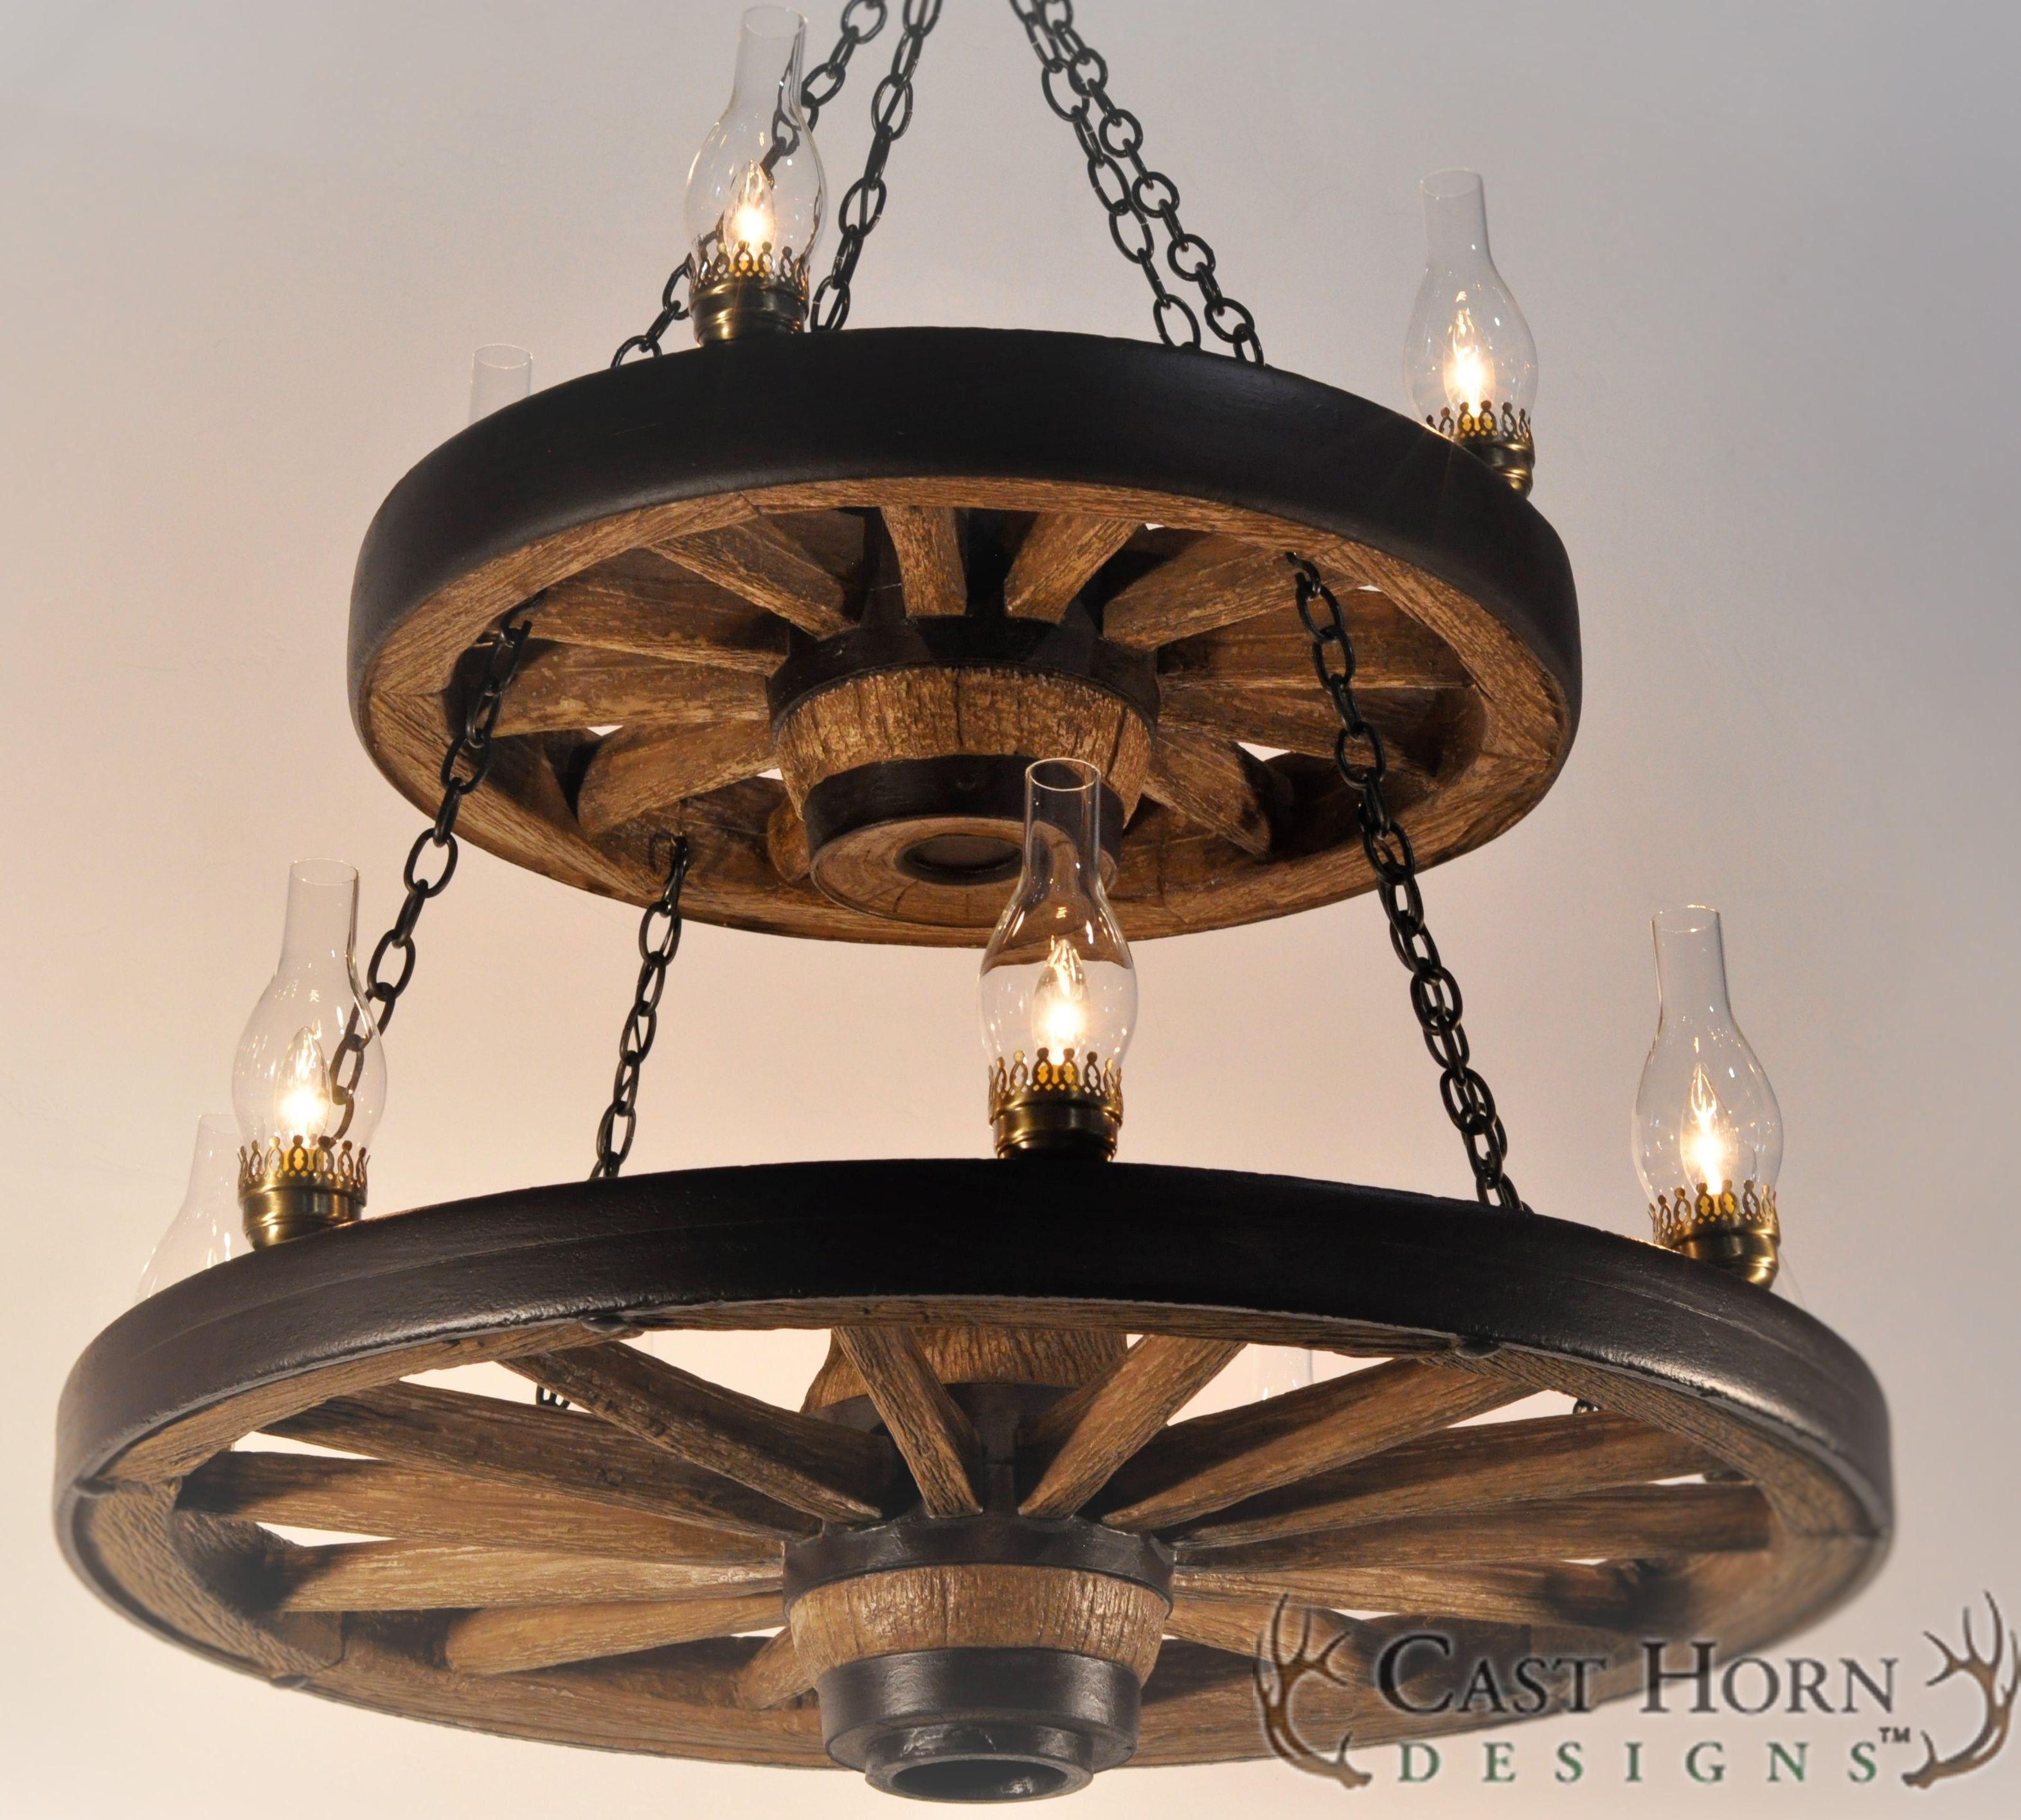 Wagon Wheel Light Chandelier: Double Wagon Wheel Chandelier By Cast Horn Designs